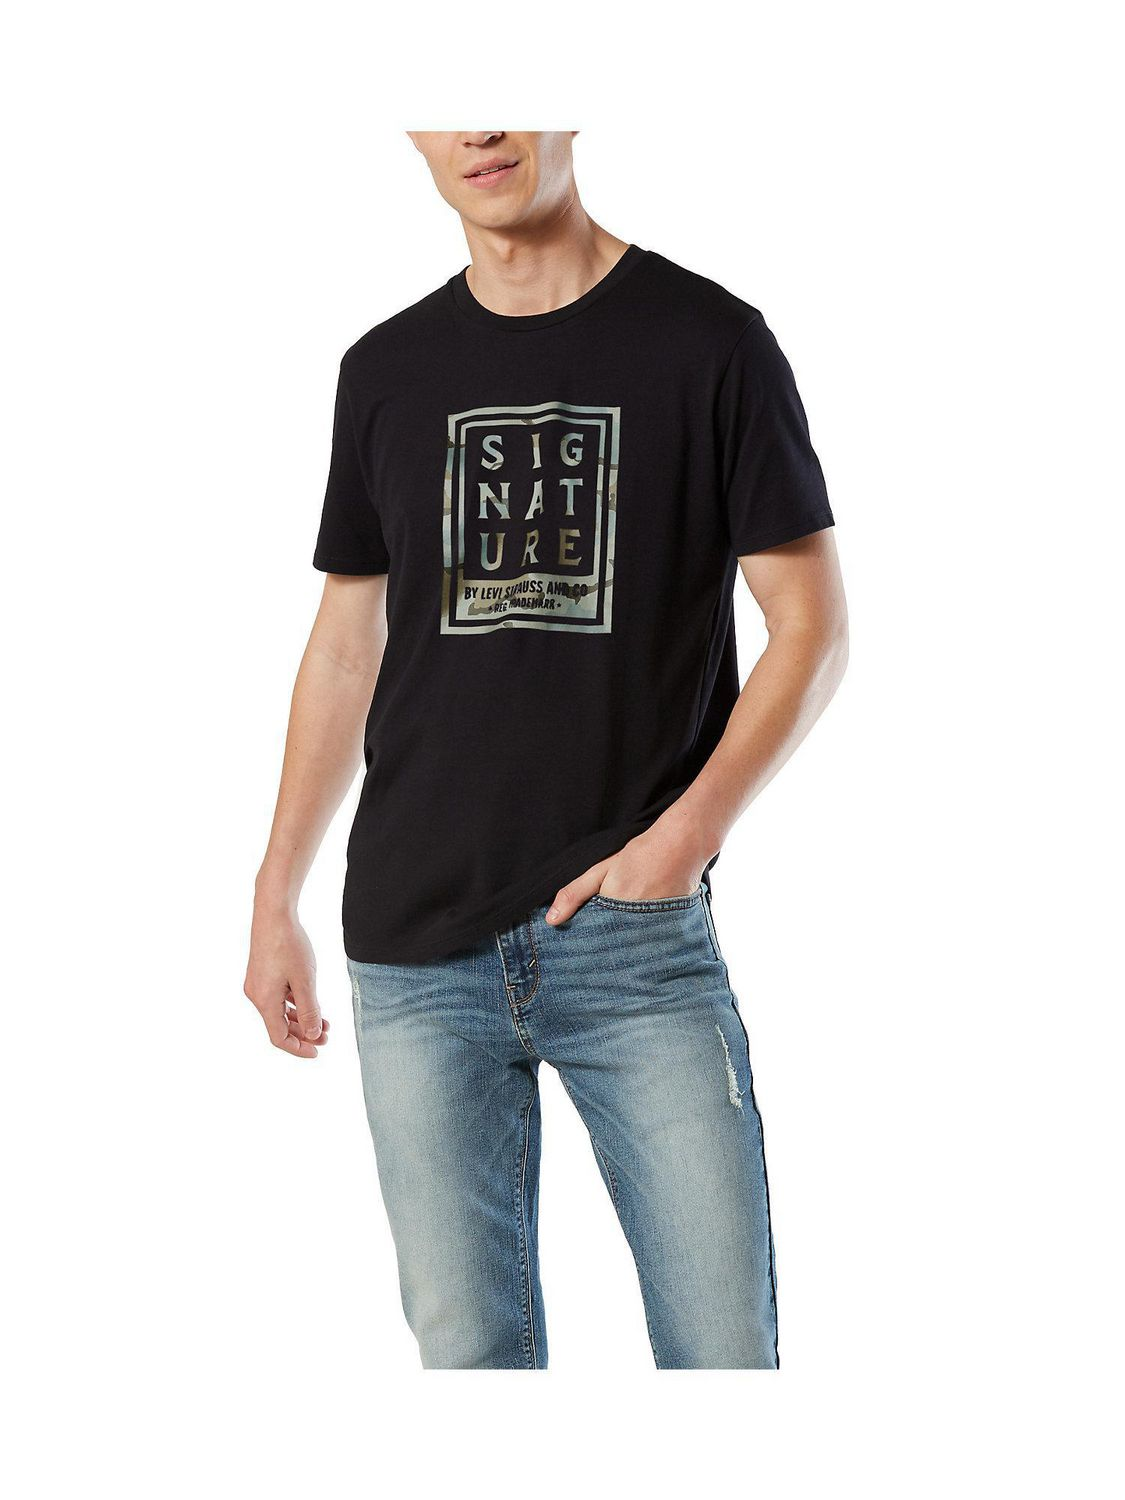 Signature by Levi Strauss & Co.™ Men's Short Sleeve Tee ...